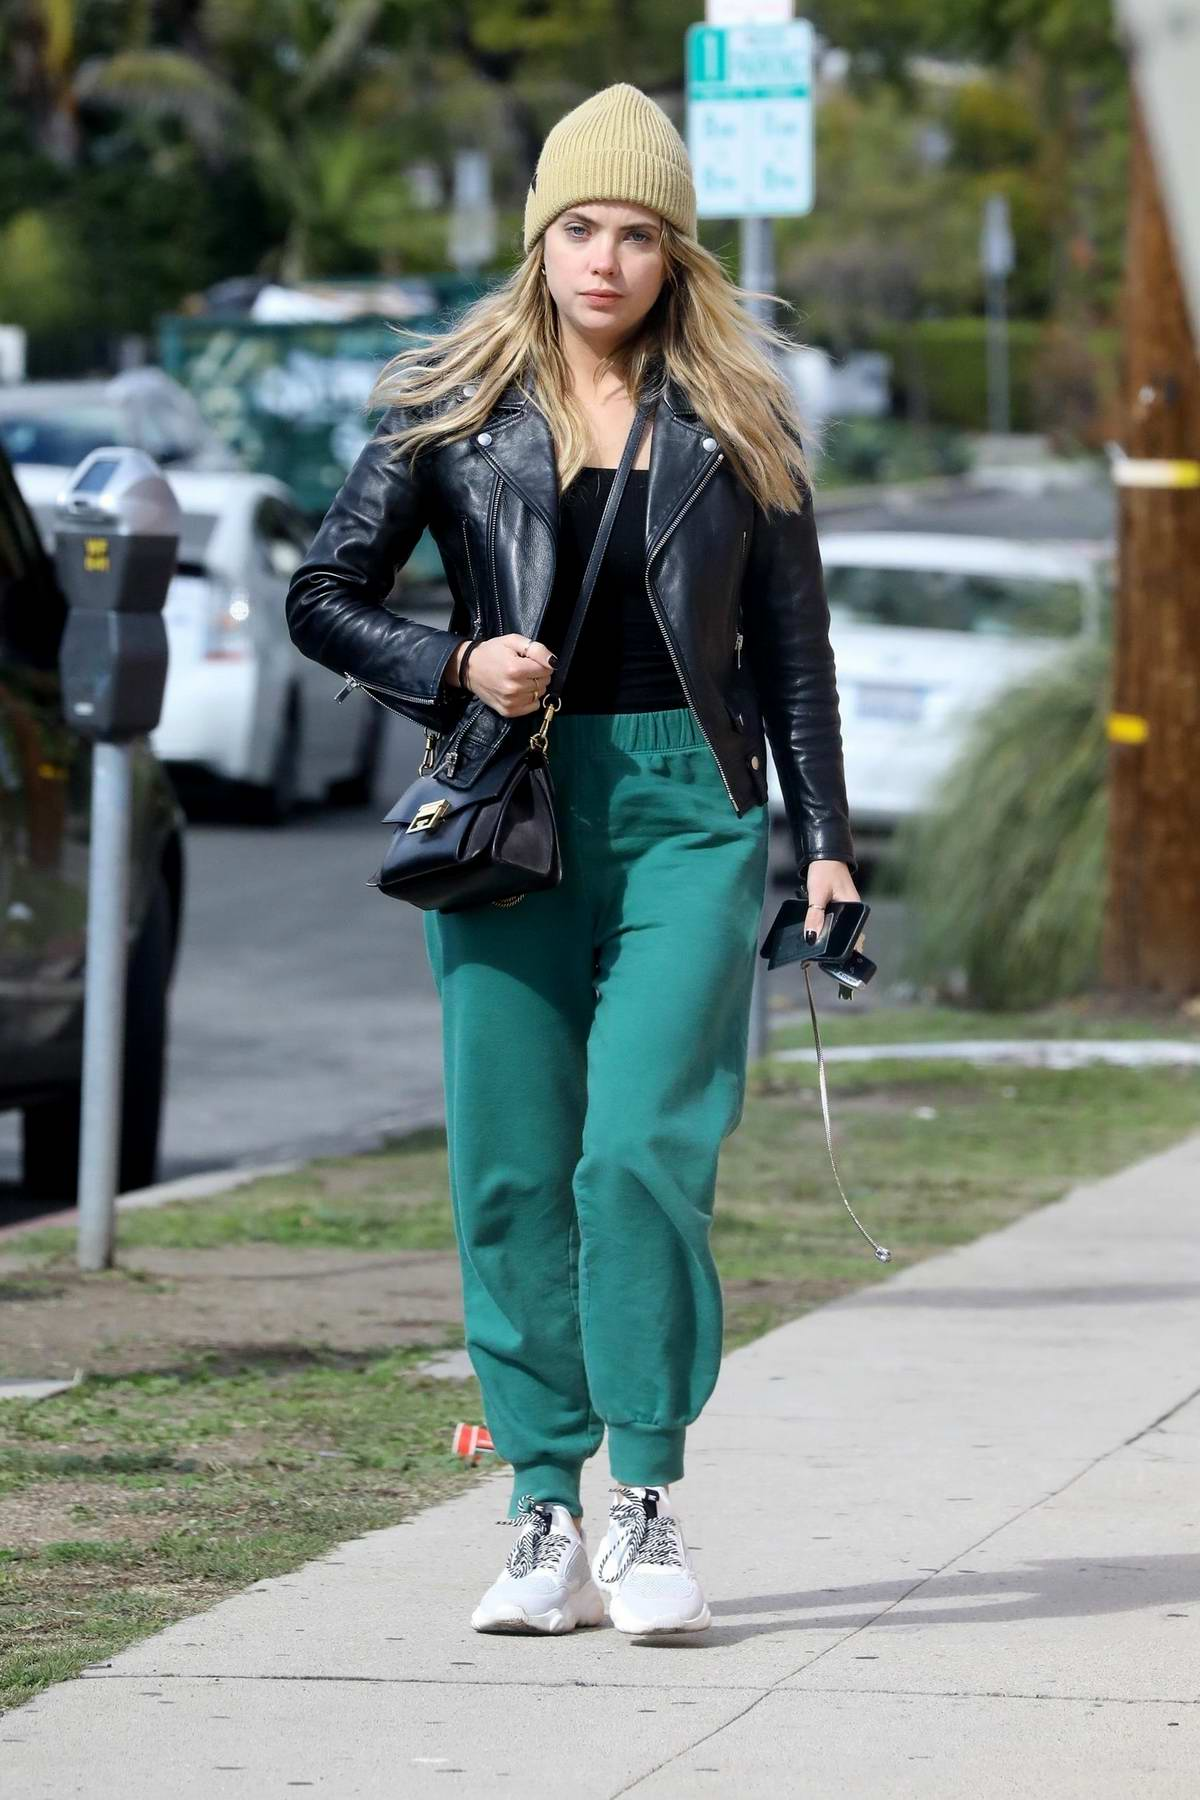 Ashley Benson steps out for a stroll while rocking teal sweatpants, black leather jacket and a beanie in Los Angeles